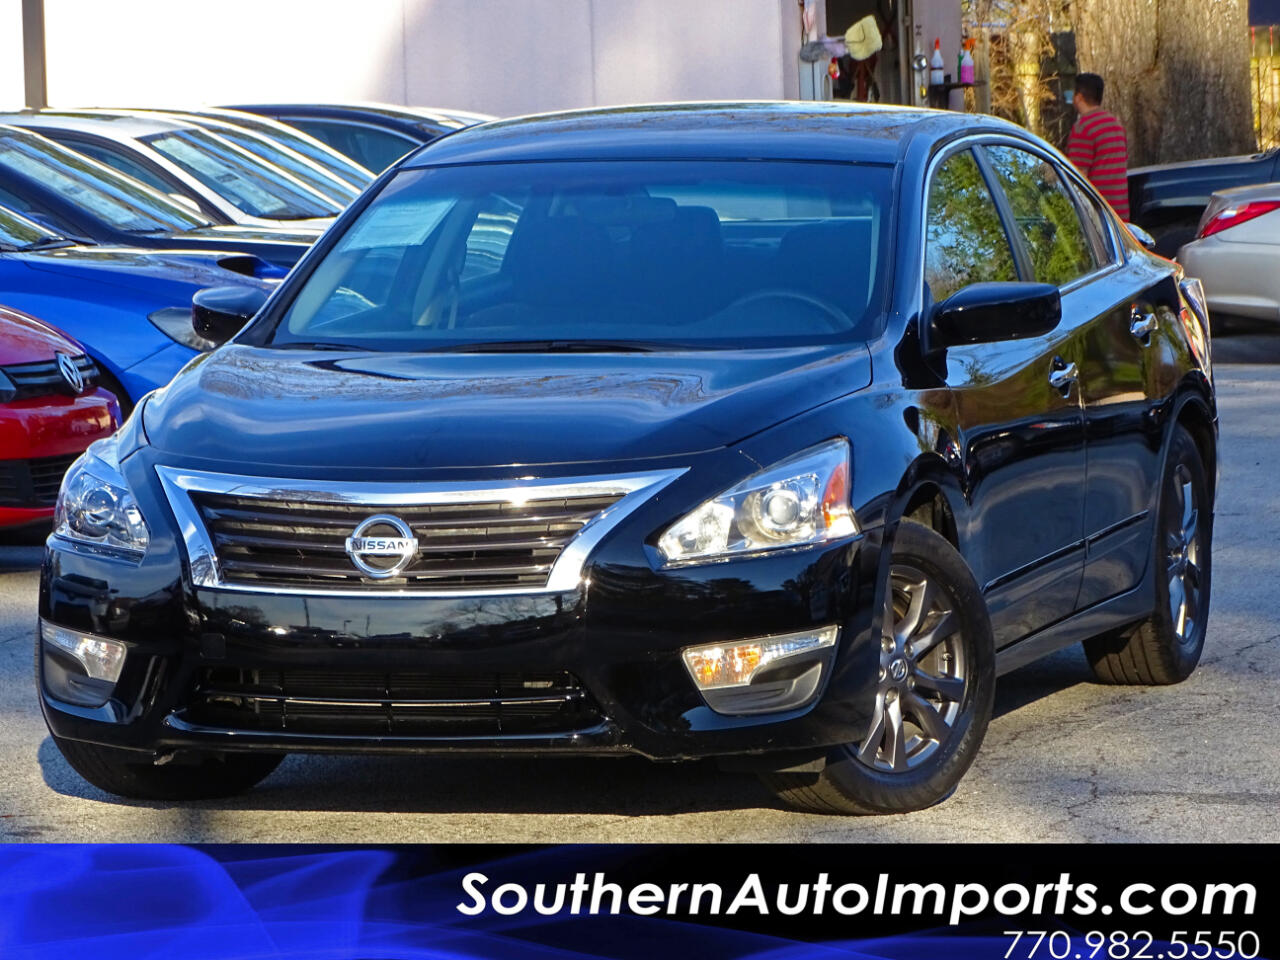 2015 Nissan Altima S w/Back up Camera Alloy Wheels